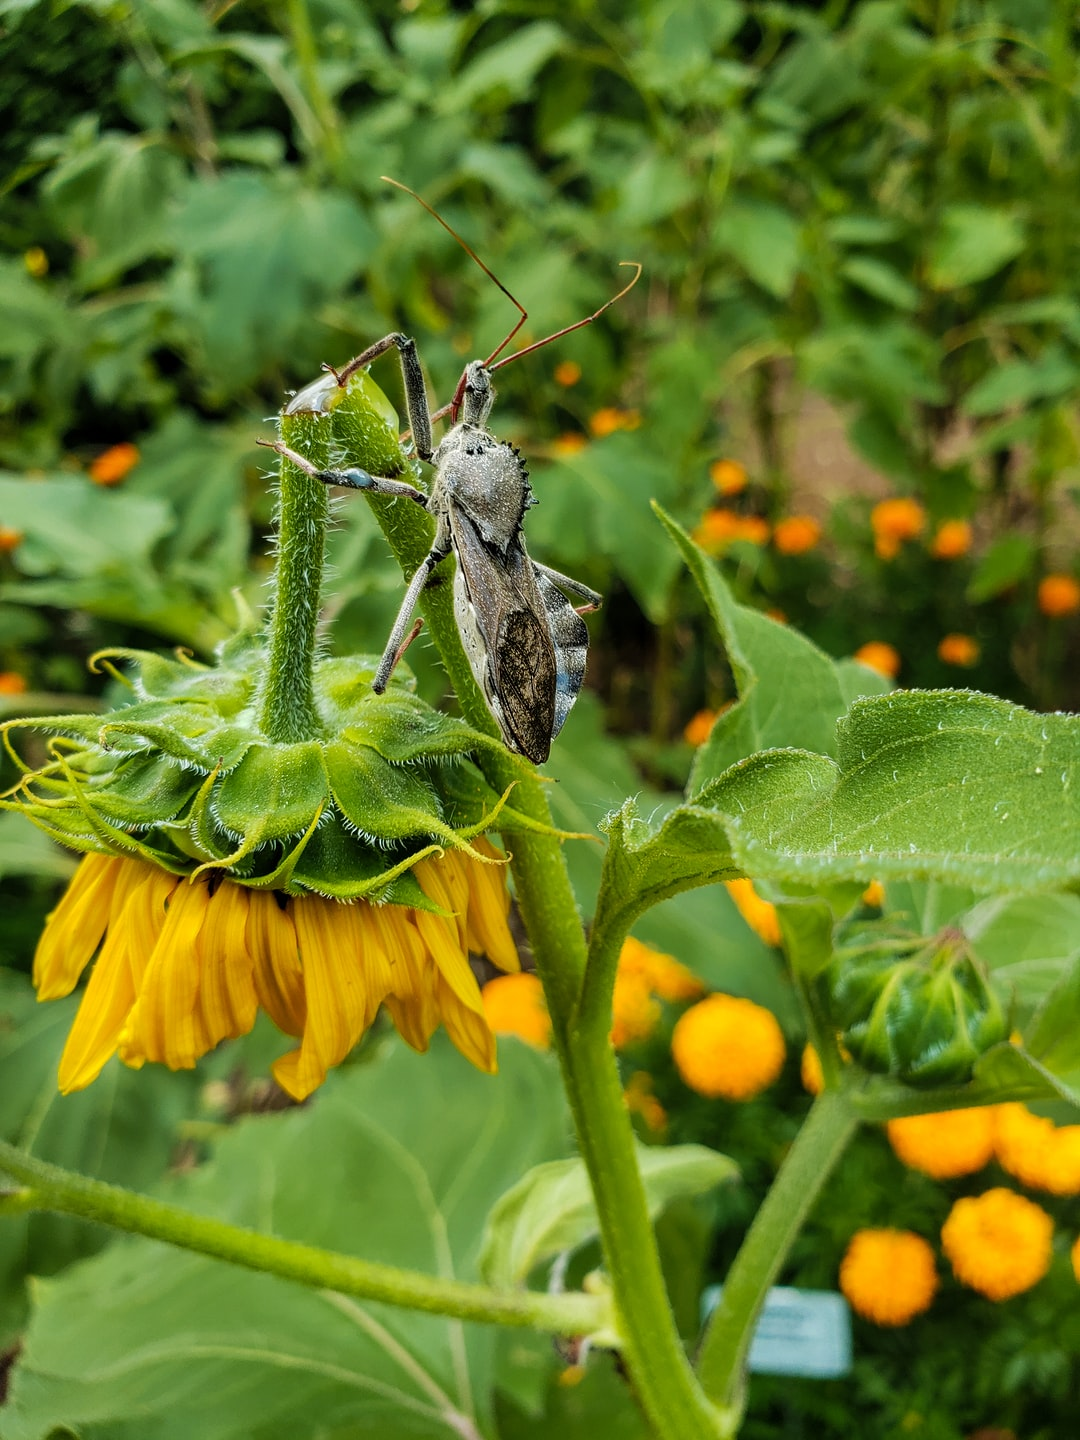 Wheel Bug (Assassin Bug) on damaged sunflower